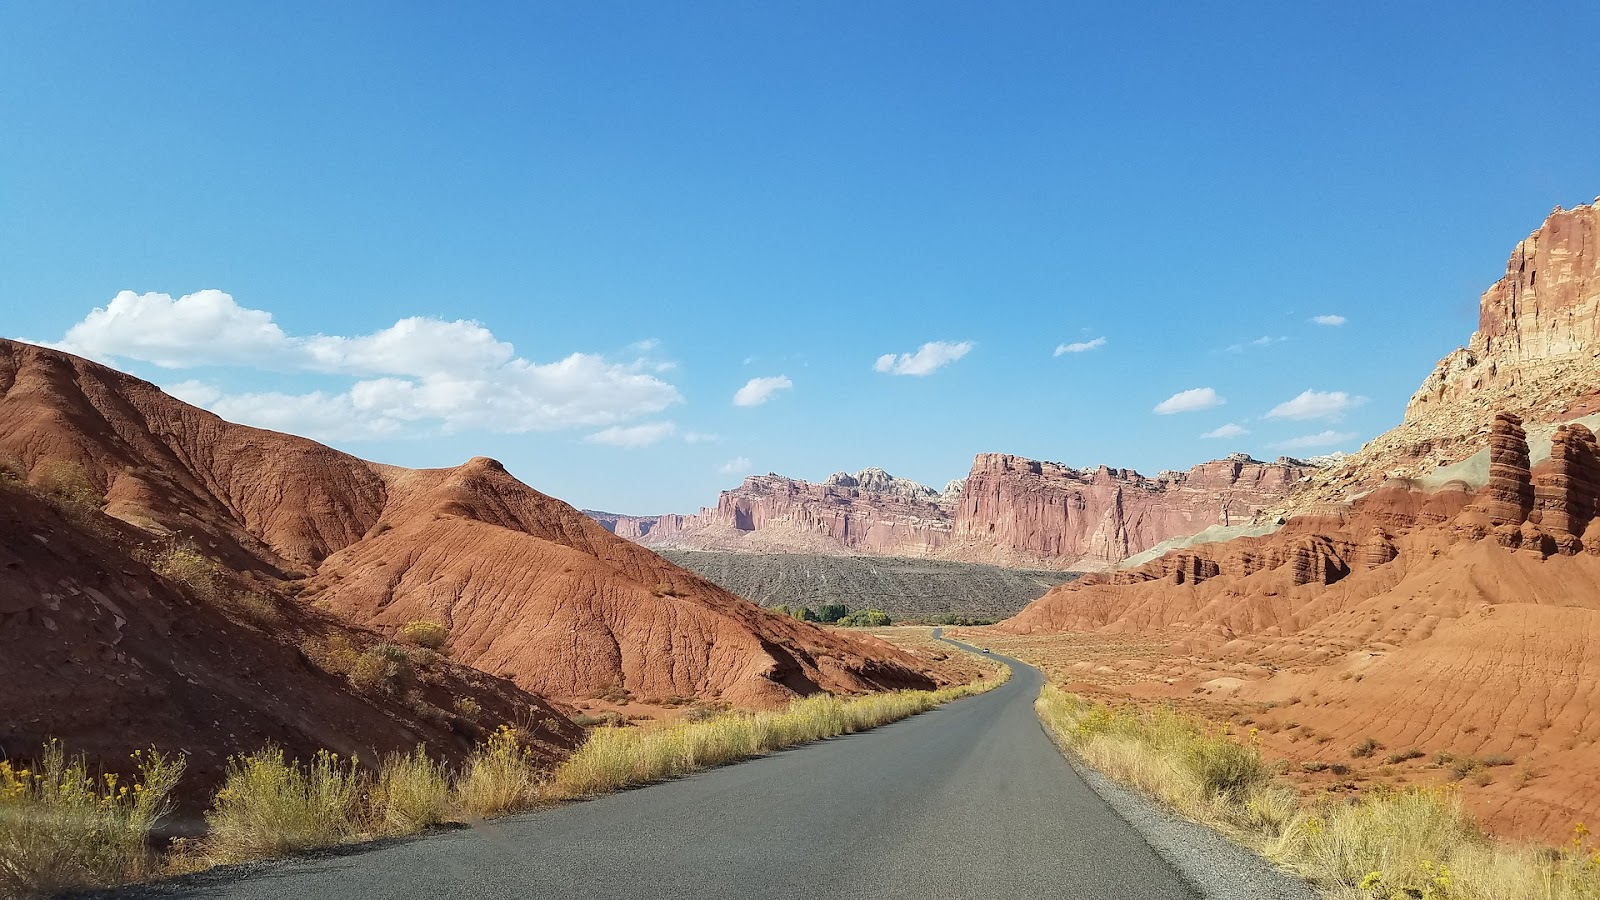 capitol-reef-empty-road-canyons-red-rocks-utah